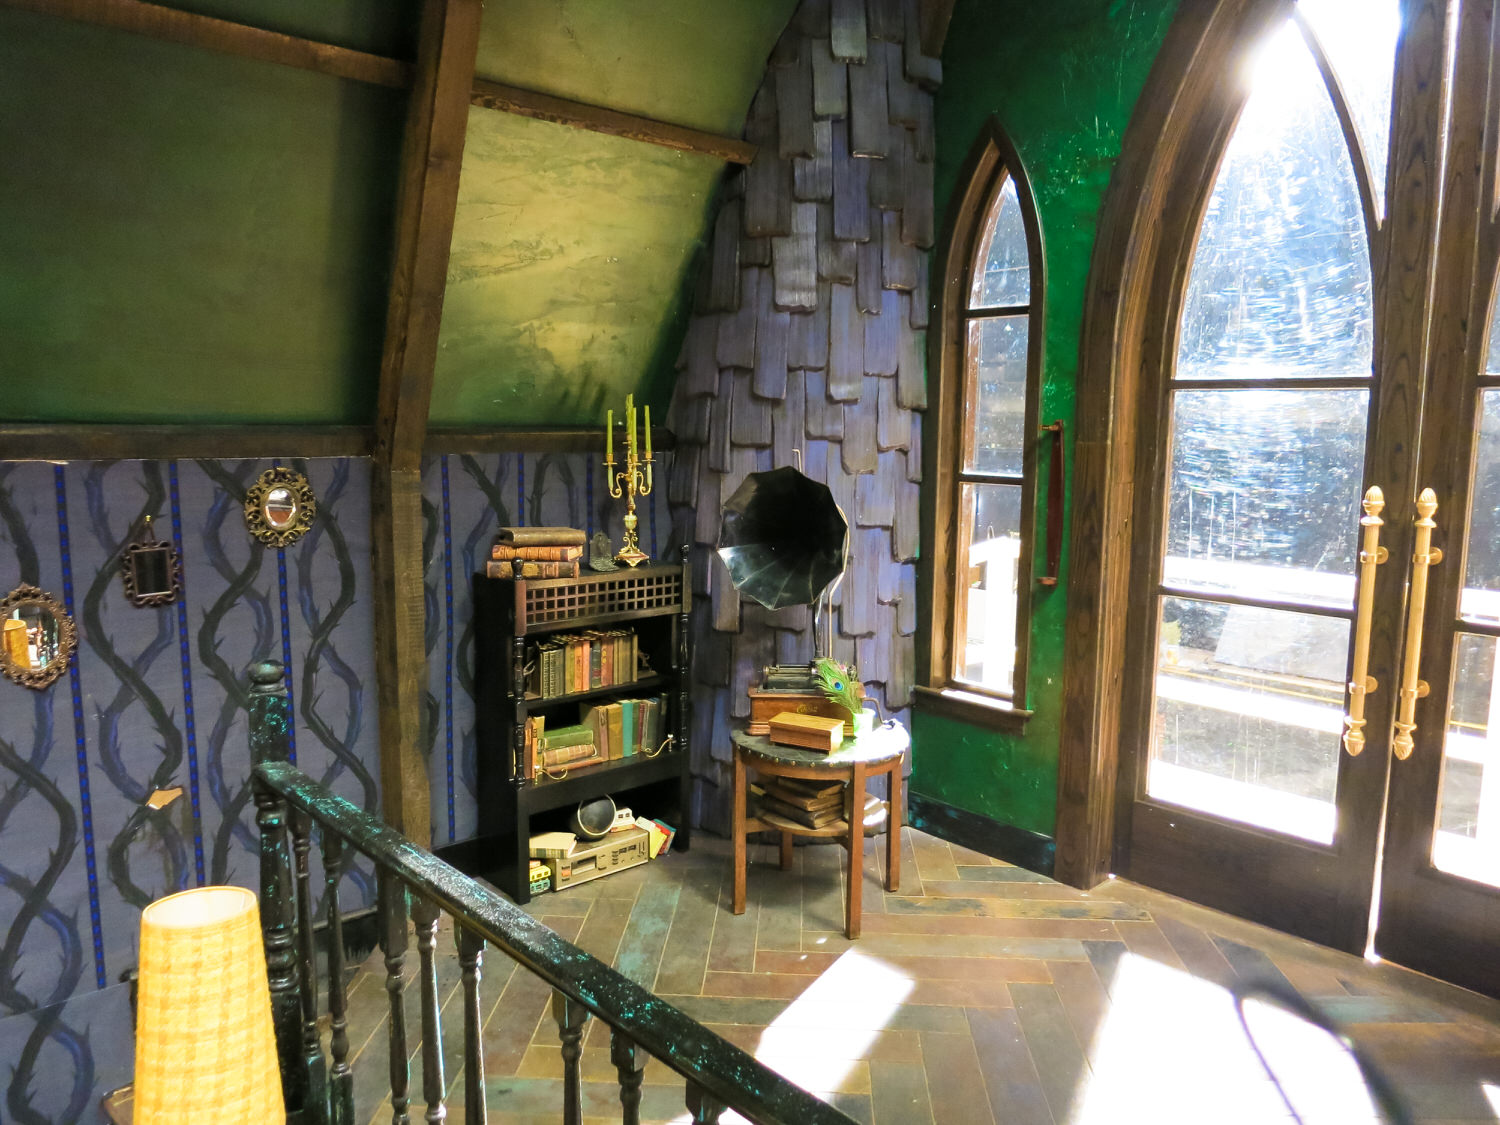 Maleficent's scratchy Victrola. Notice the double helix of the custom wallpaper. It evokes both Maleficent's classic thorn vine's from Sleeping Beauty and the idea of the DNA of evil. Does it pass from one generation to the next, or can one change their destiny?